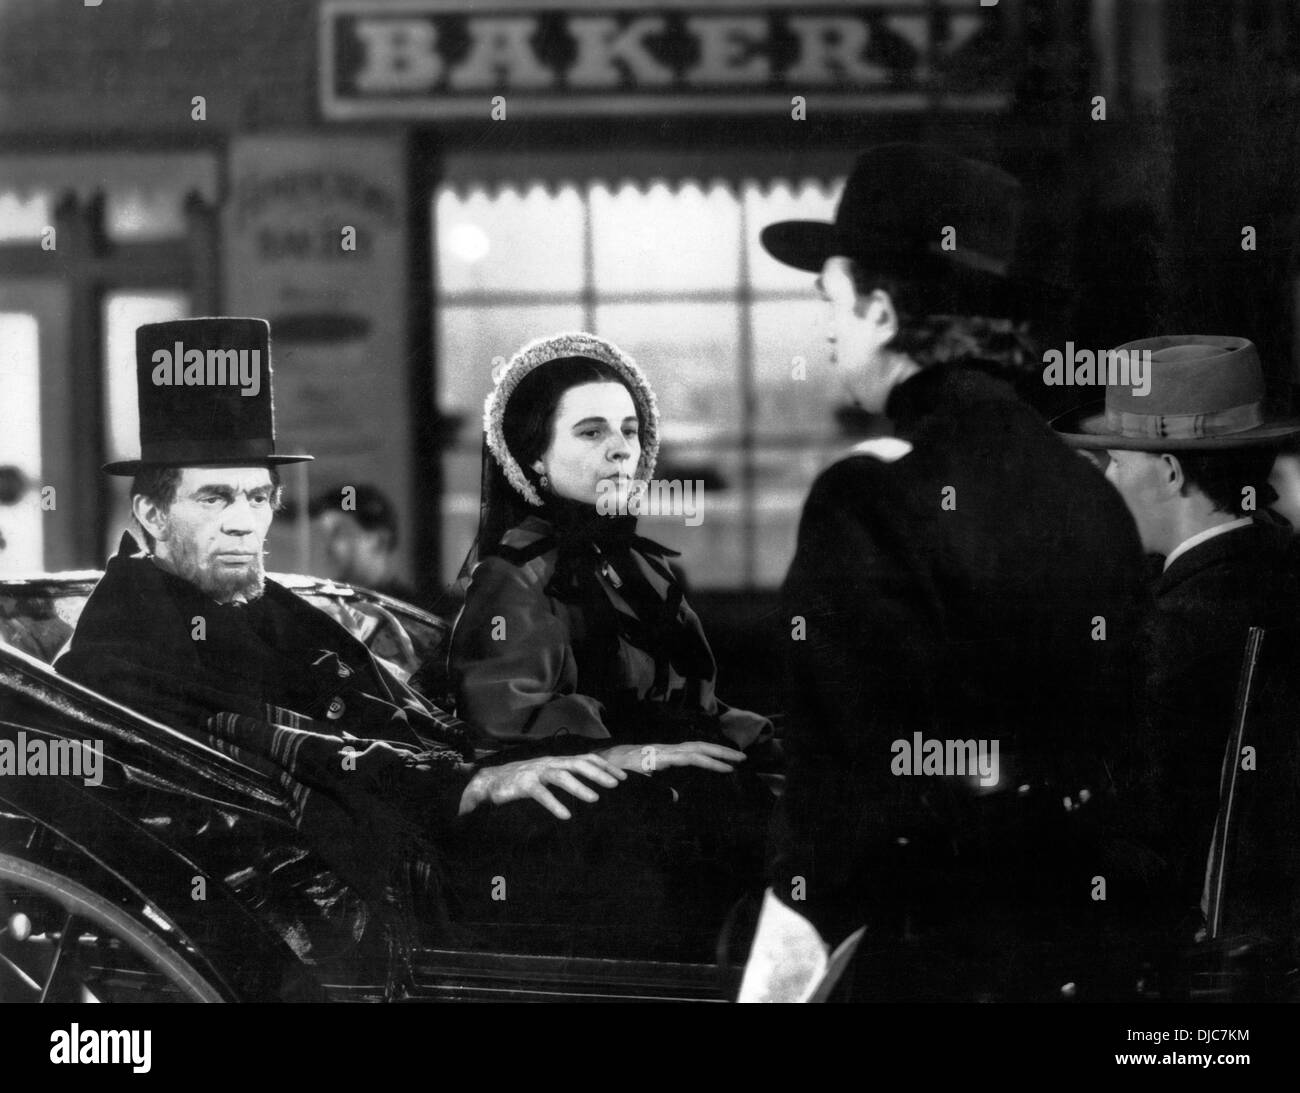 Raymond Massey and Ruth Gordon on-set of the Film, Abe Lincoln in Illinois, 1940 - Stock Image